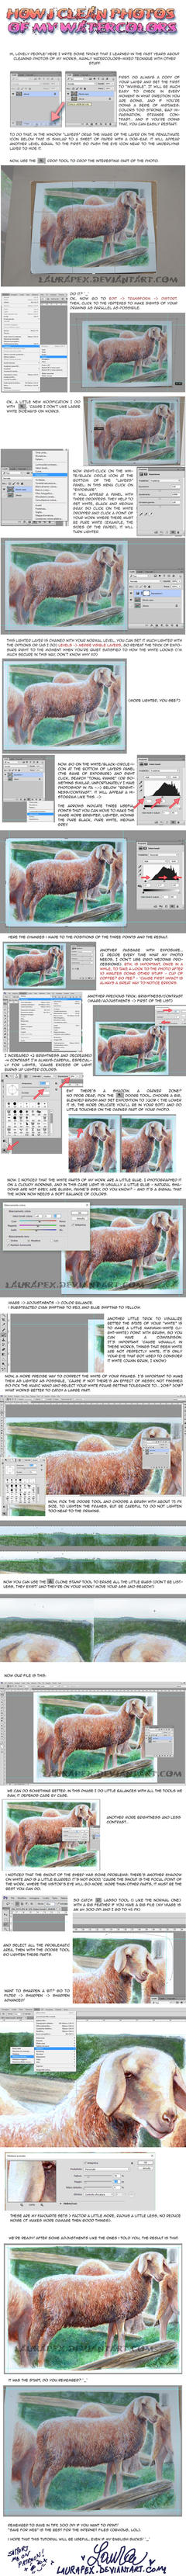 Tutorial: How to clean traditional art photos! by LauraPex